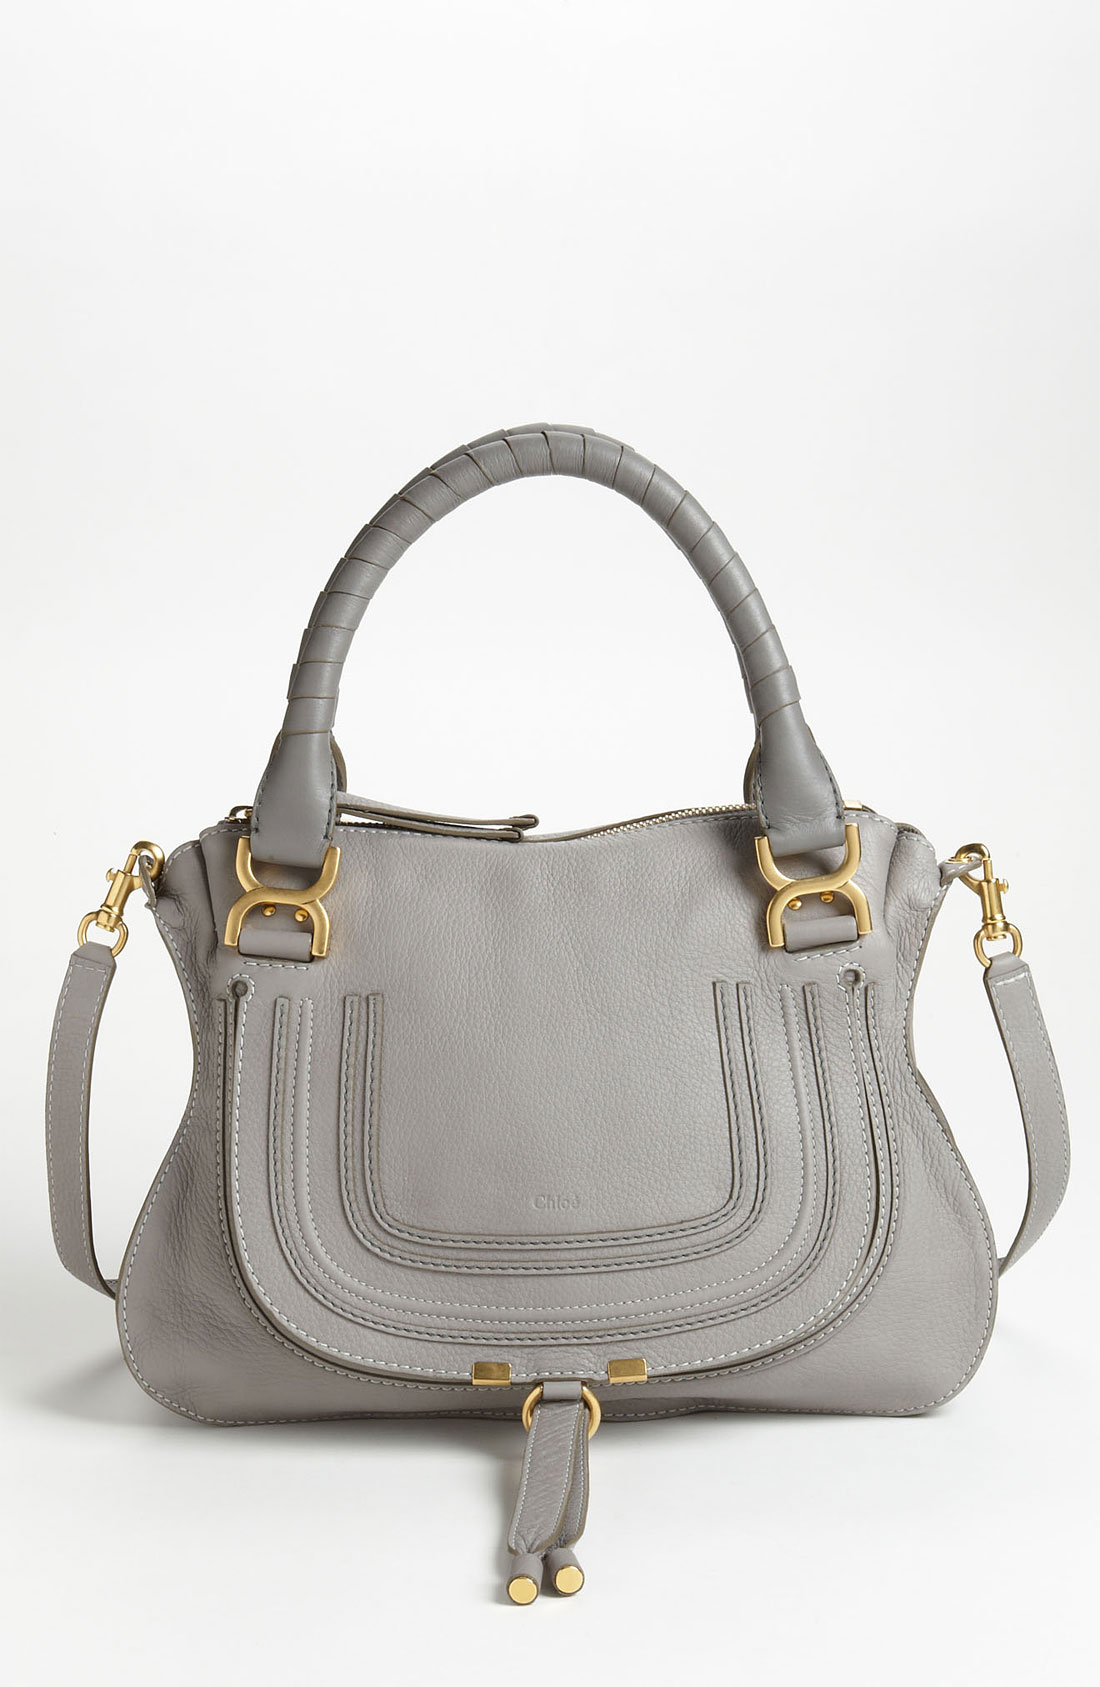 chlo 39 marcie small 39 leather satchel in gray lyst. Black Bedroom Furniture Sets. Home Design Ideas